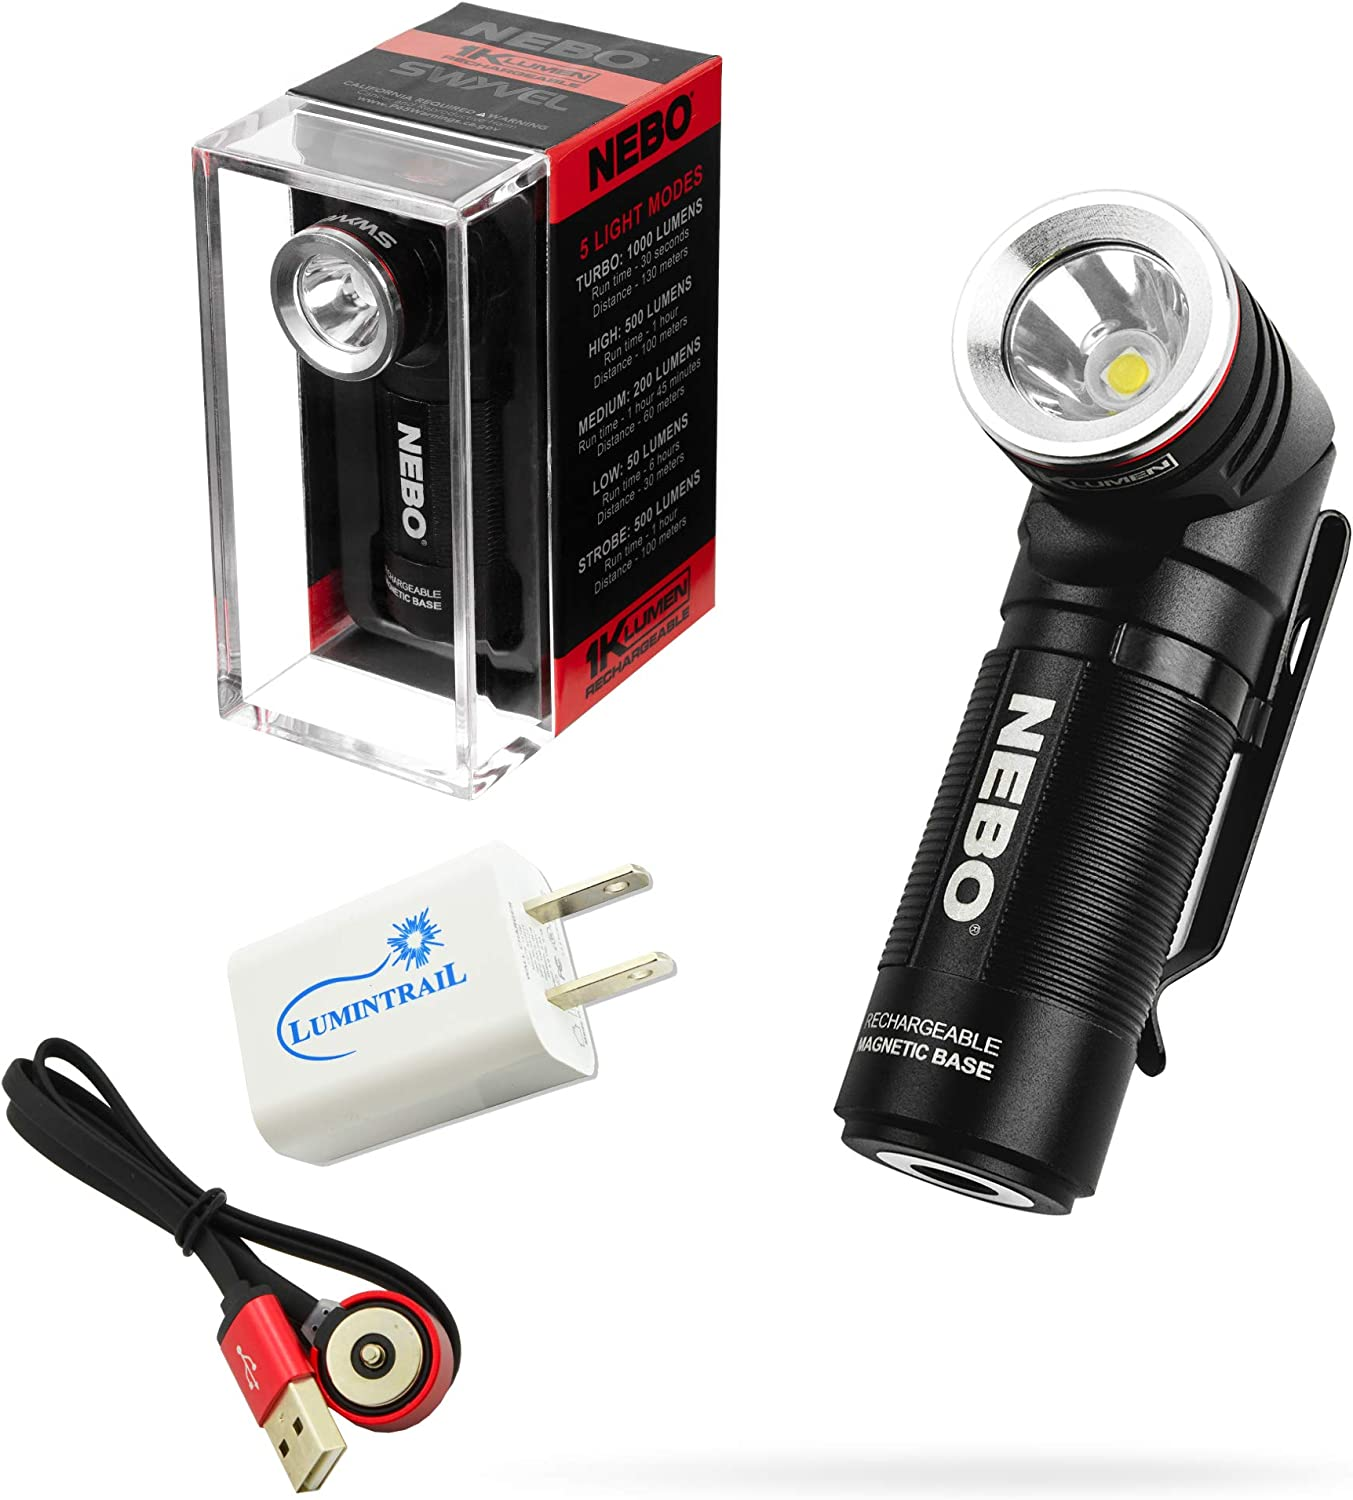 Nebo Swyvel Rechargeable Flashlight 1000 Lumen Light with Rotating Head Bundle with a Lumitrail USB Wall Adapter